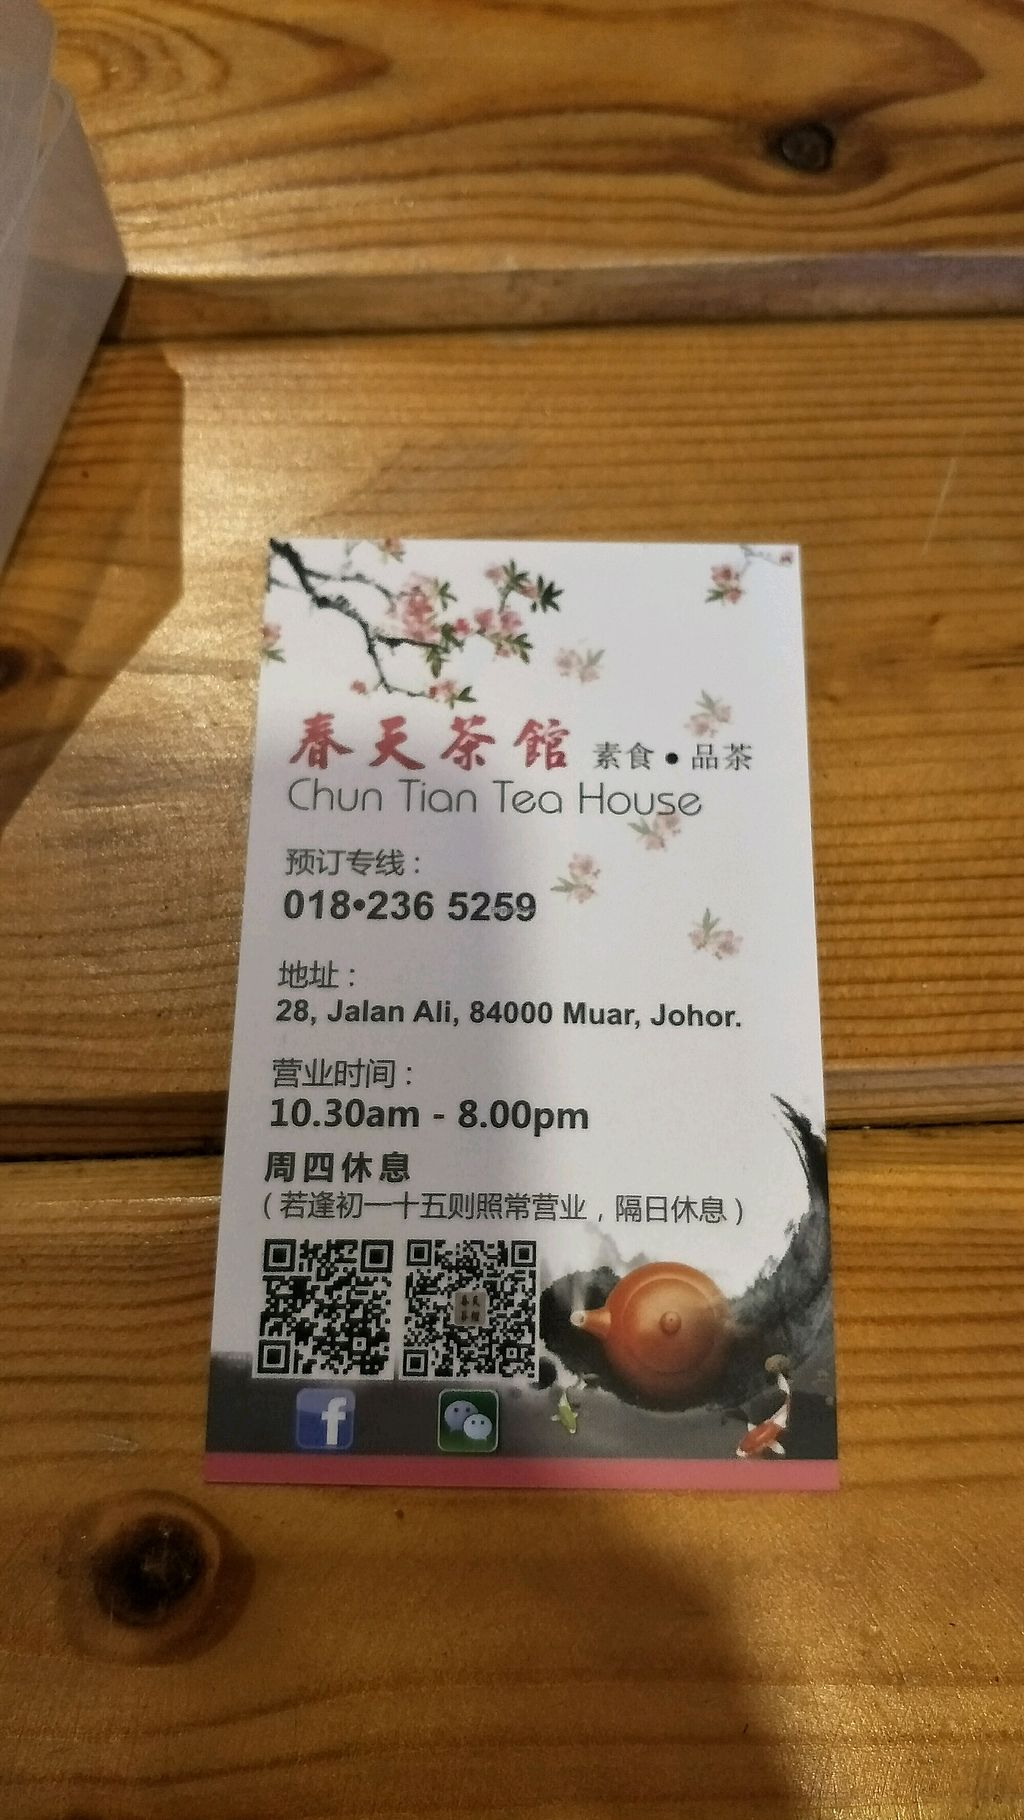 """Photo of Chun Tian Tea House  by <a href=""""/members/profile/alicel"""">alicel</a> <br/>business card <br/> December 16, 2017  - <a href='/contact/abuse/image/107297/336160'>Report</a>"""